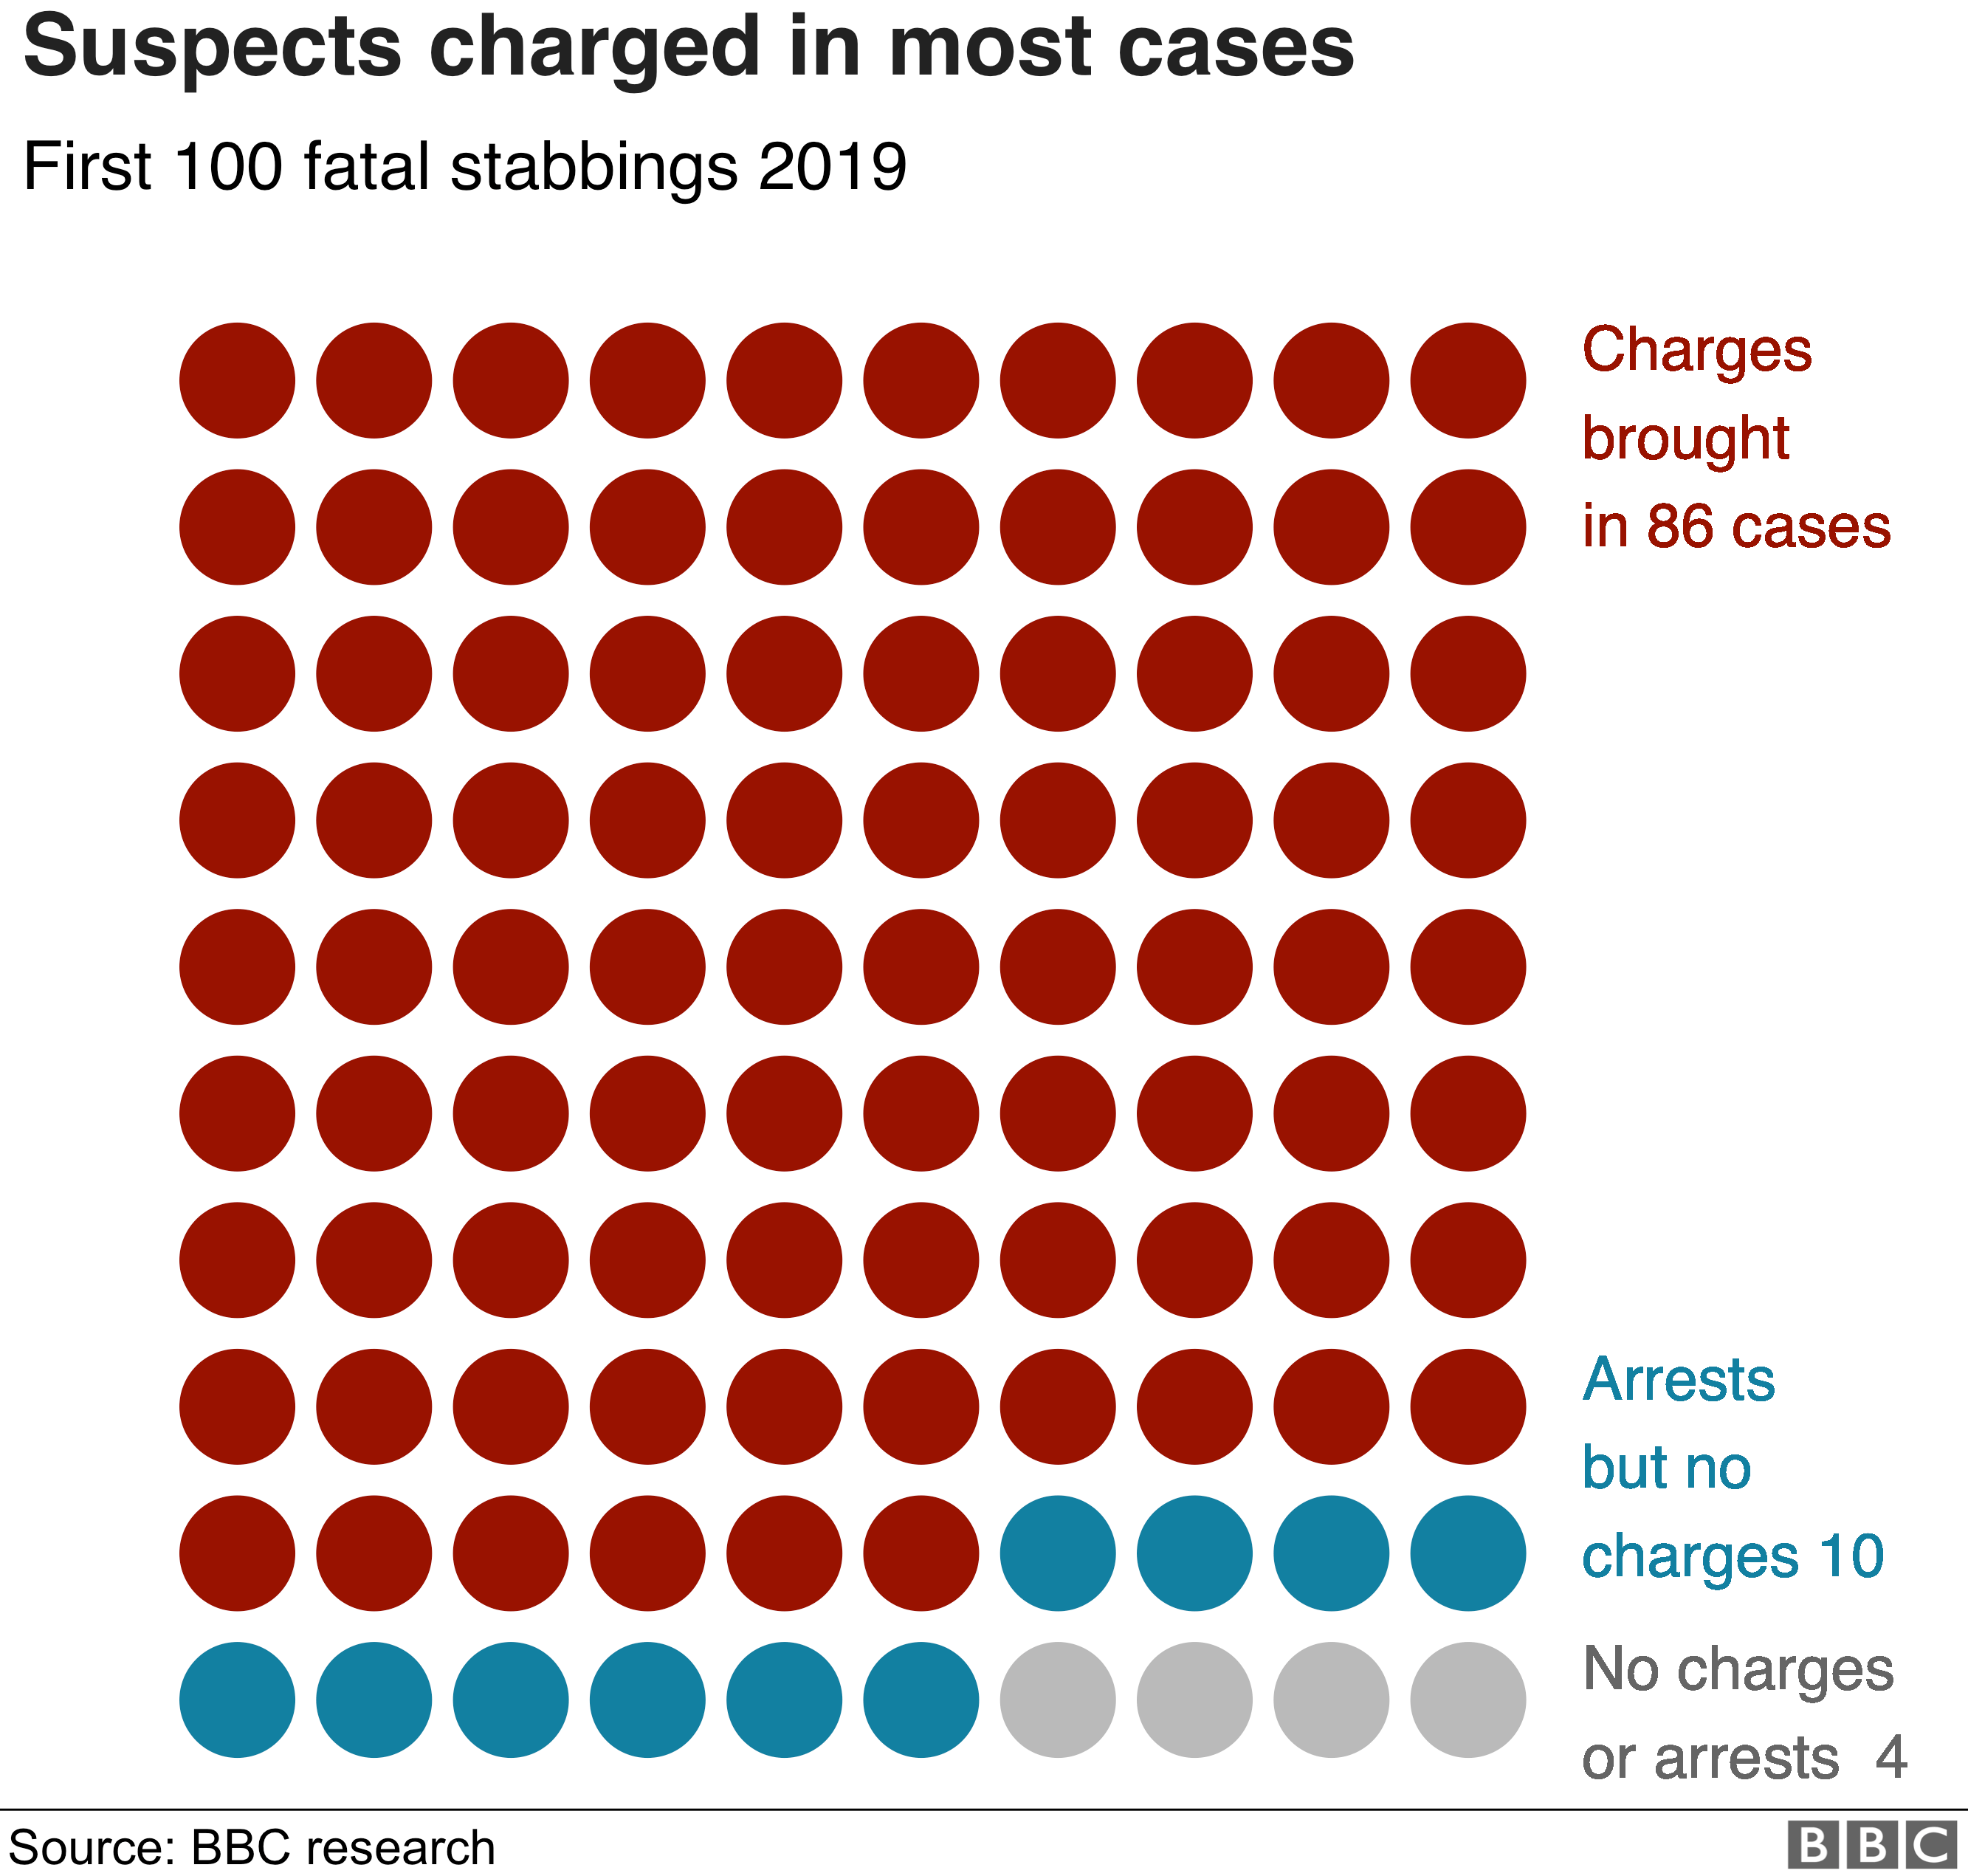 Suspects charged in 86 cases